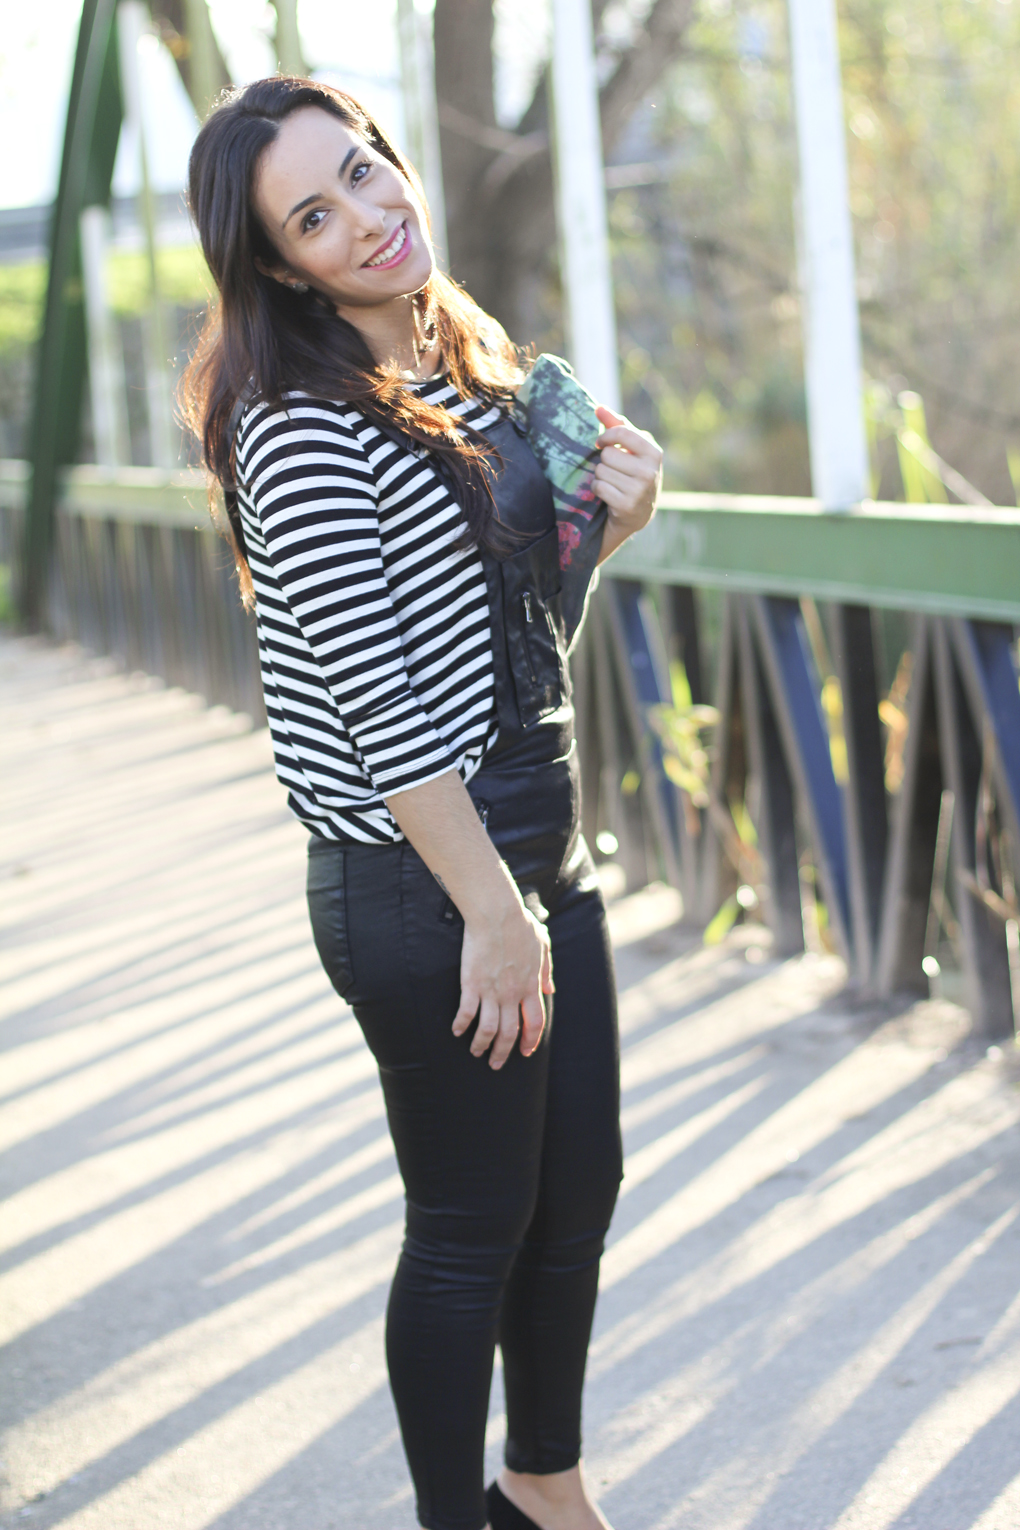 look-fashion-como-combinar-piel-con-rayas-moda-vigo-street-style-stripes-and-leather